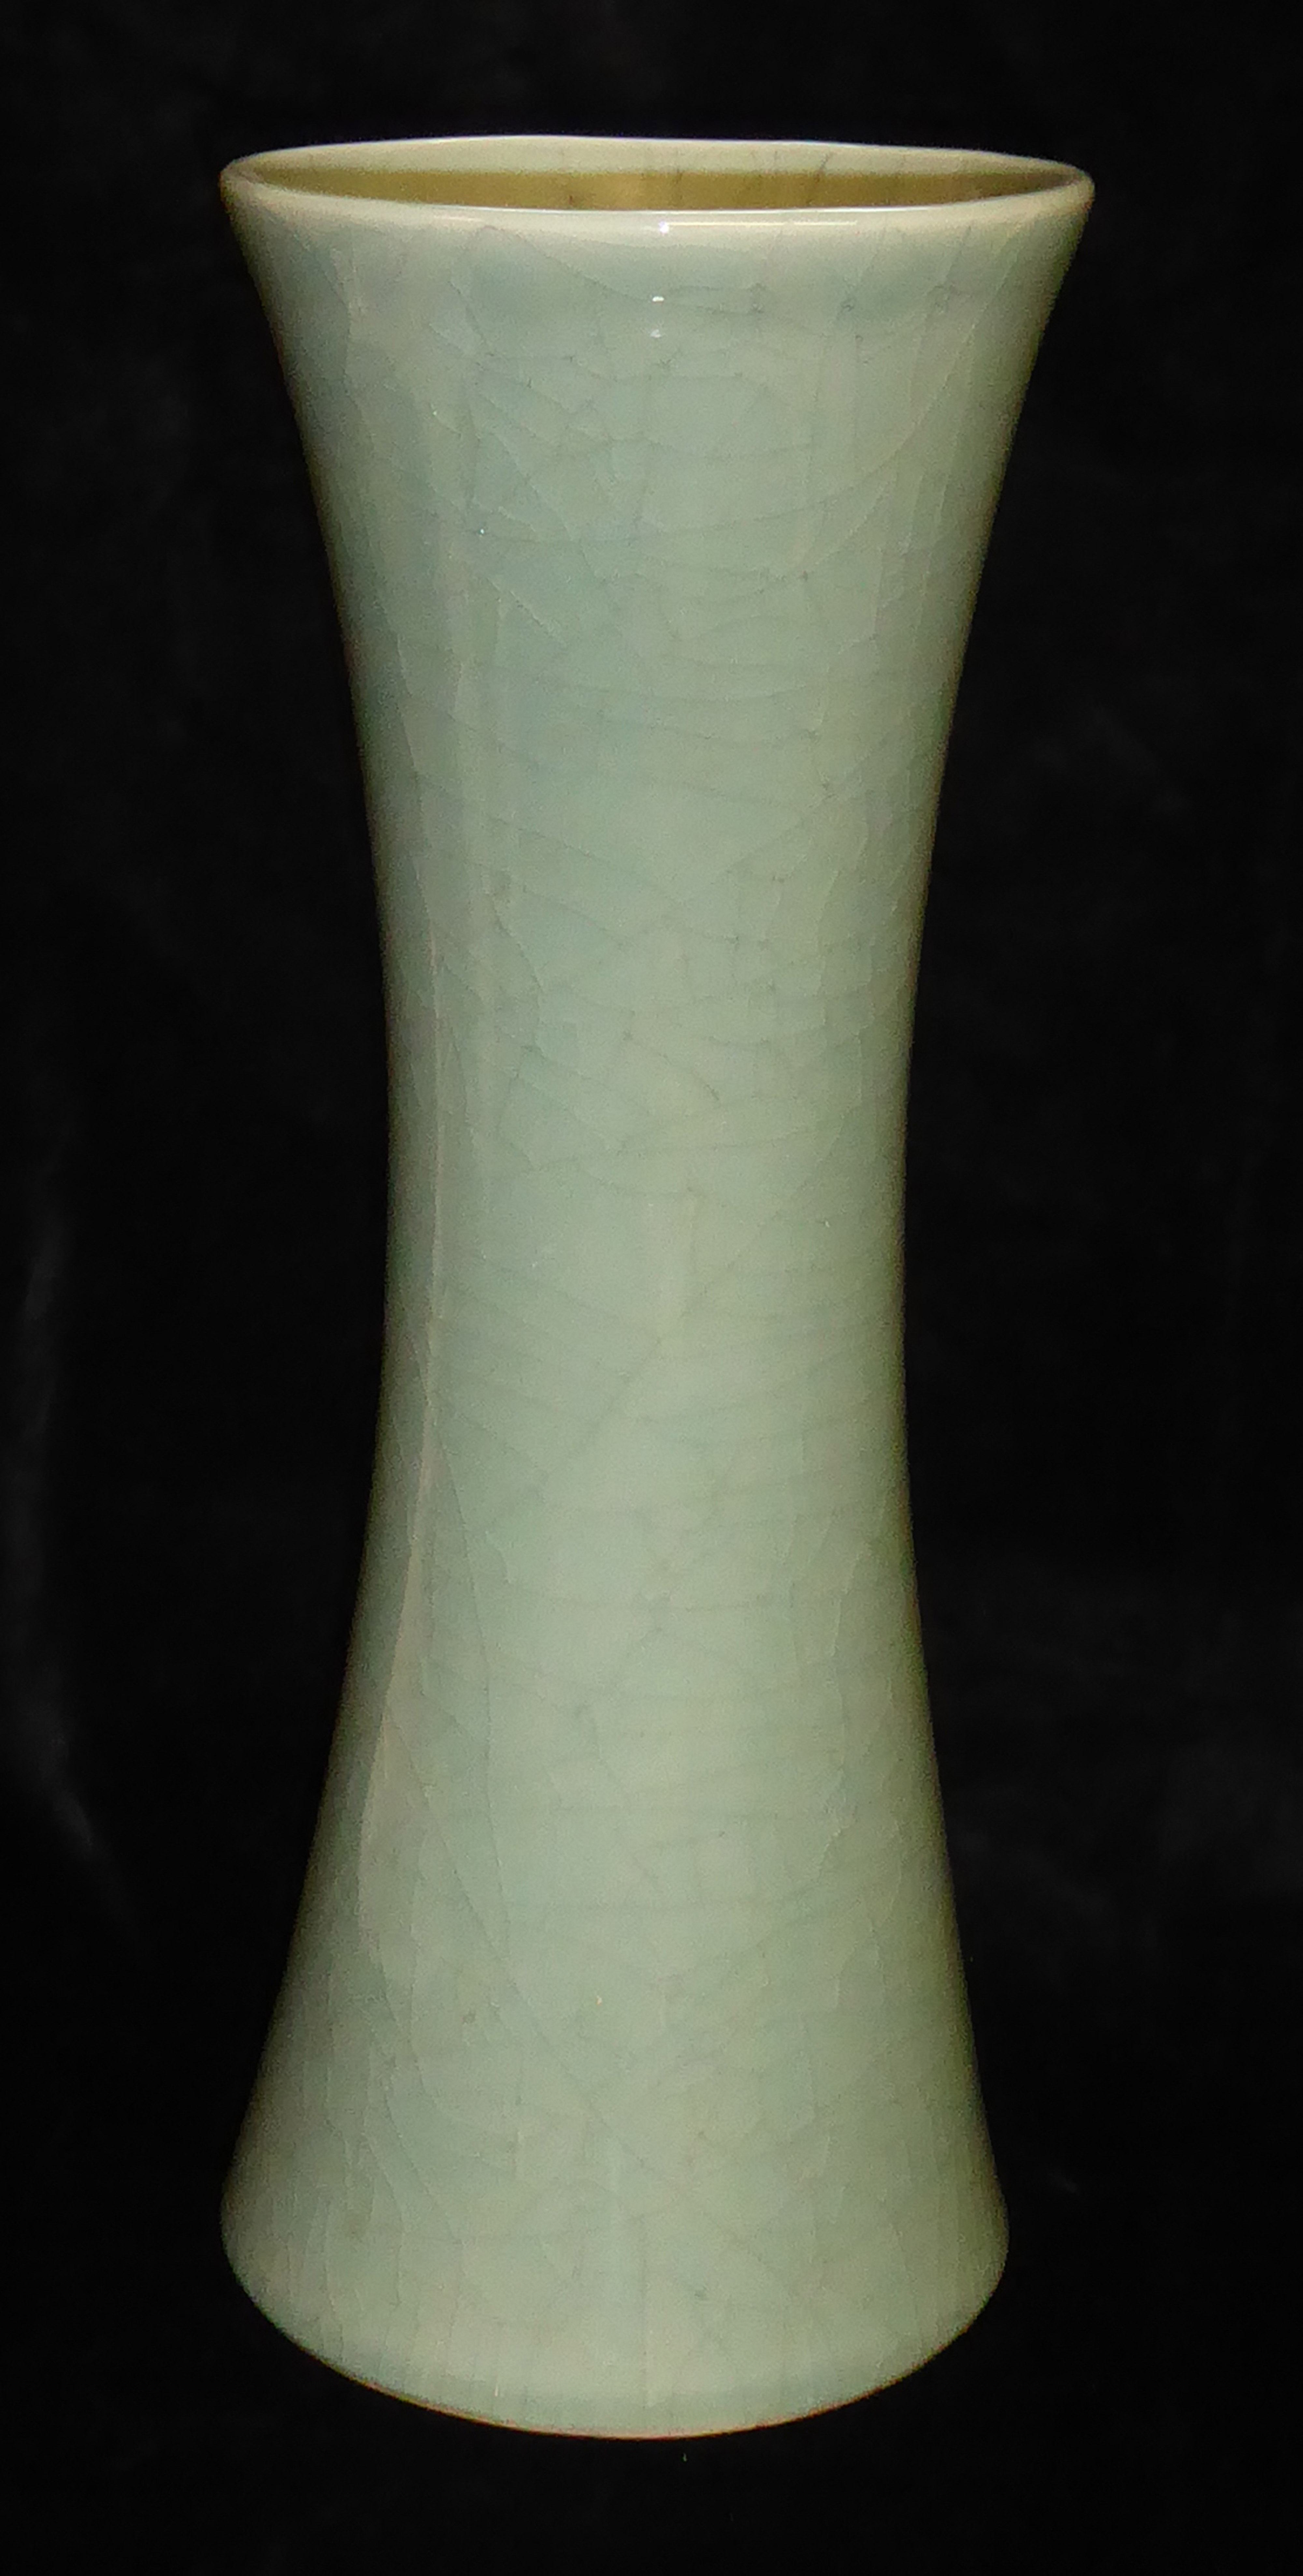 Lot 161 - A LARGE CHINESE CRACKLE GLAZE VASE Of plain form with flared rim Approx 46cm